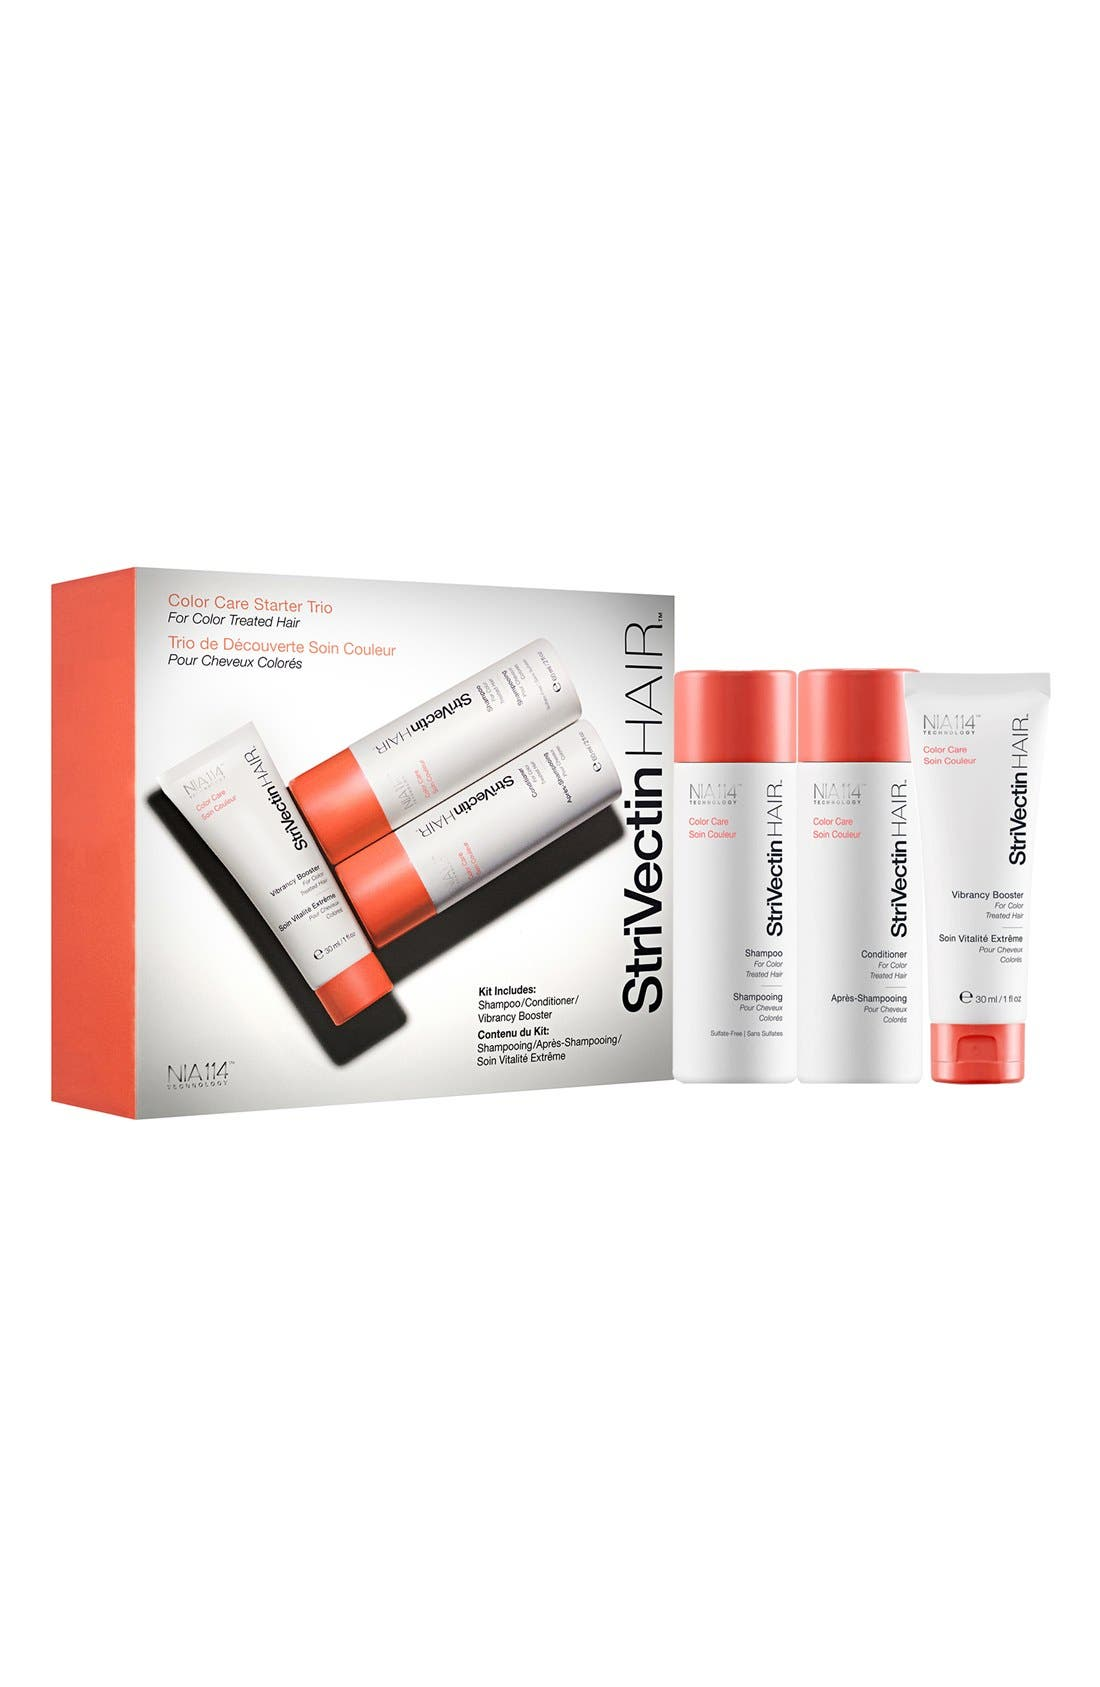 StriVectinHAIR™ 'Color Care' Hair Starter Trio